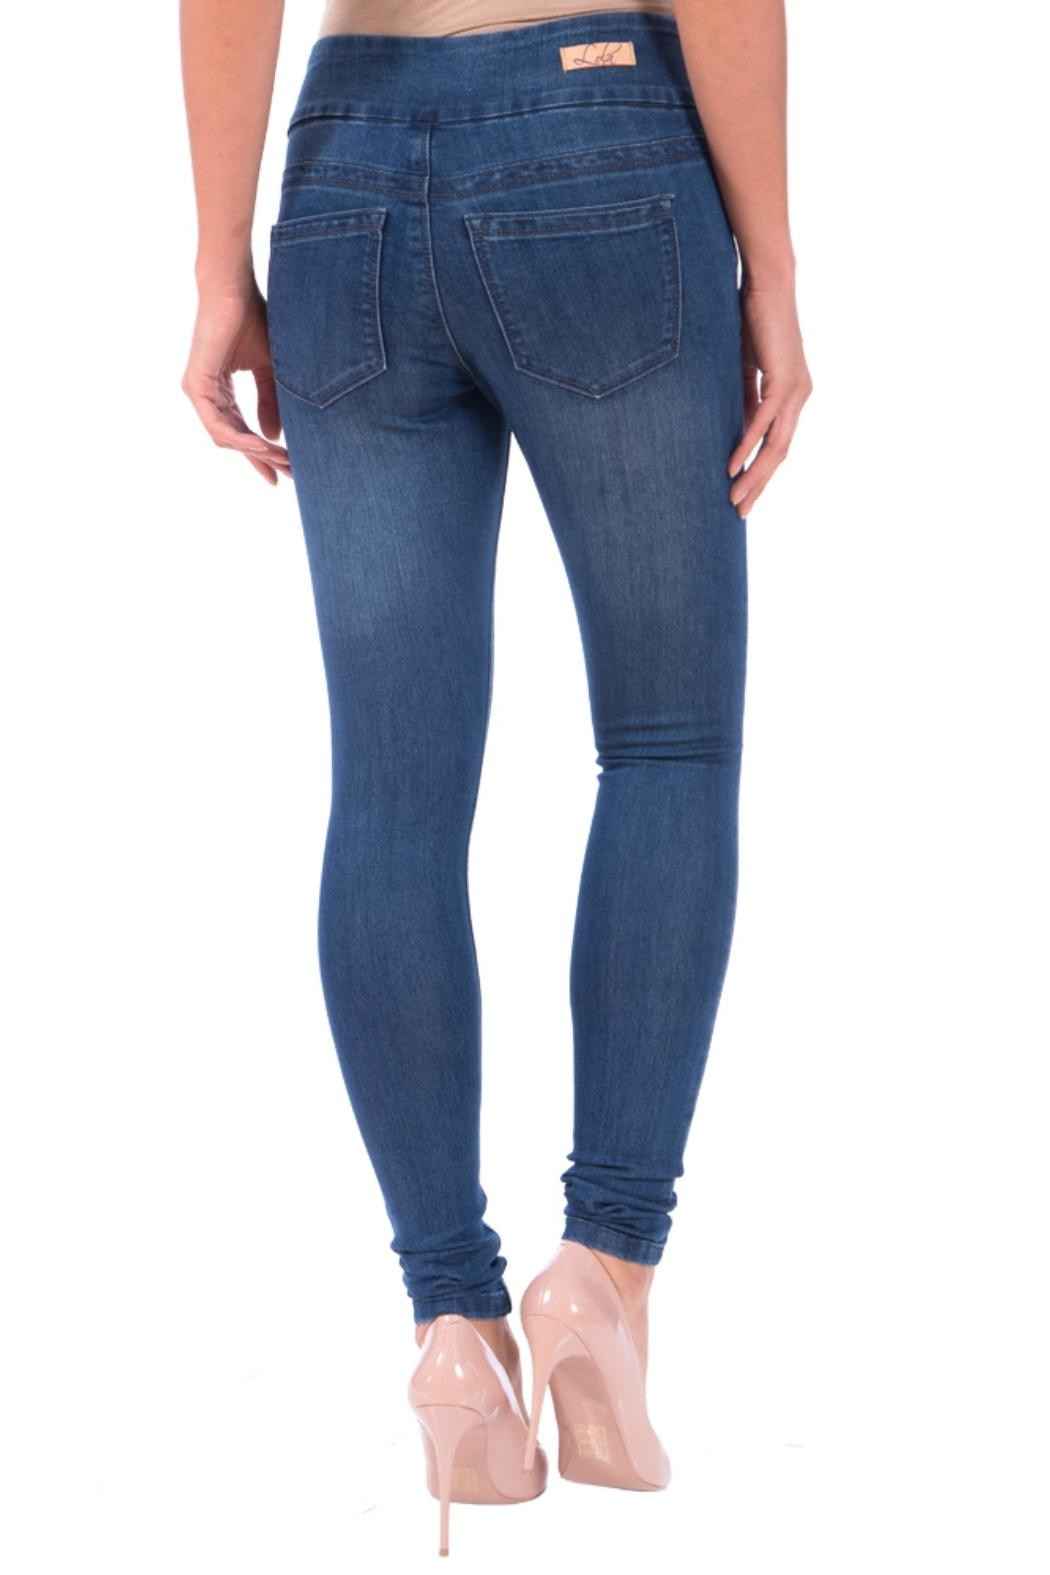 Lola Jeans Anna Pull on Denim Pant - Side Cropped Image